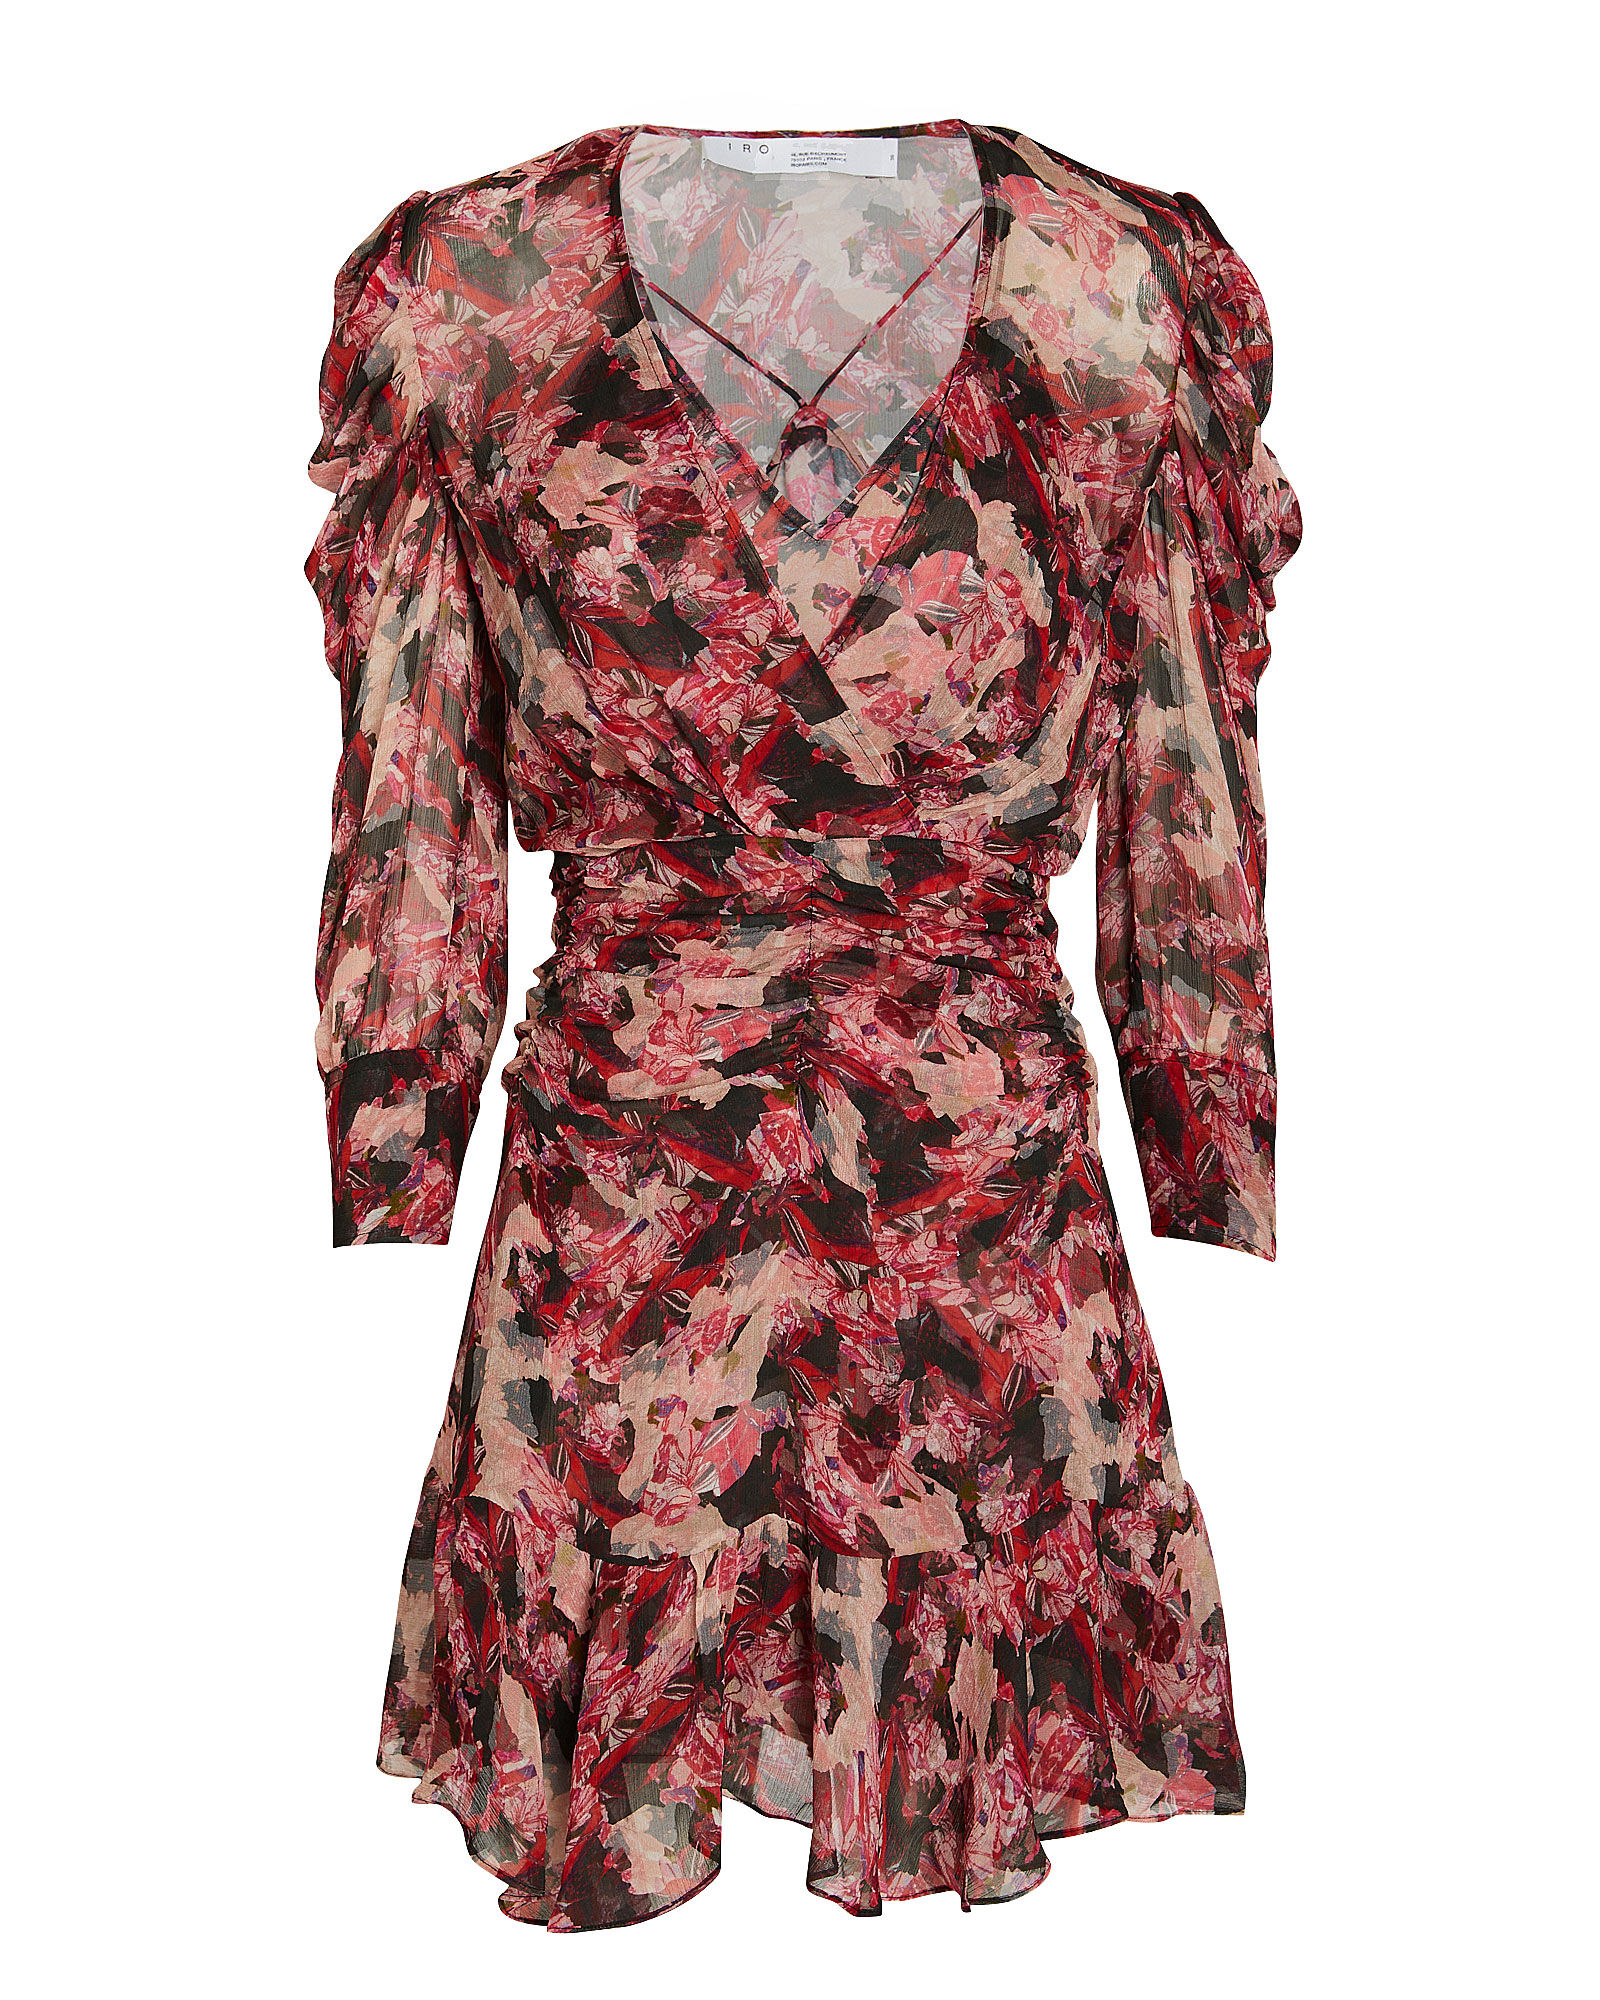 Wick Crepe Floral Mini Dress, PINK/BLACK FLORAL, hi-res